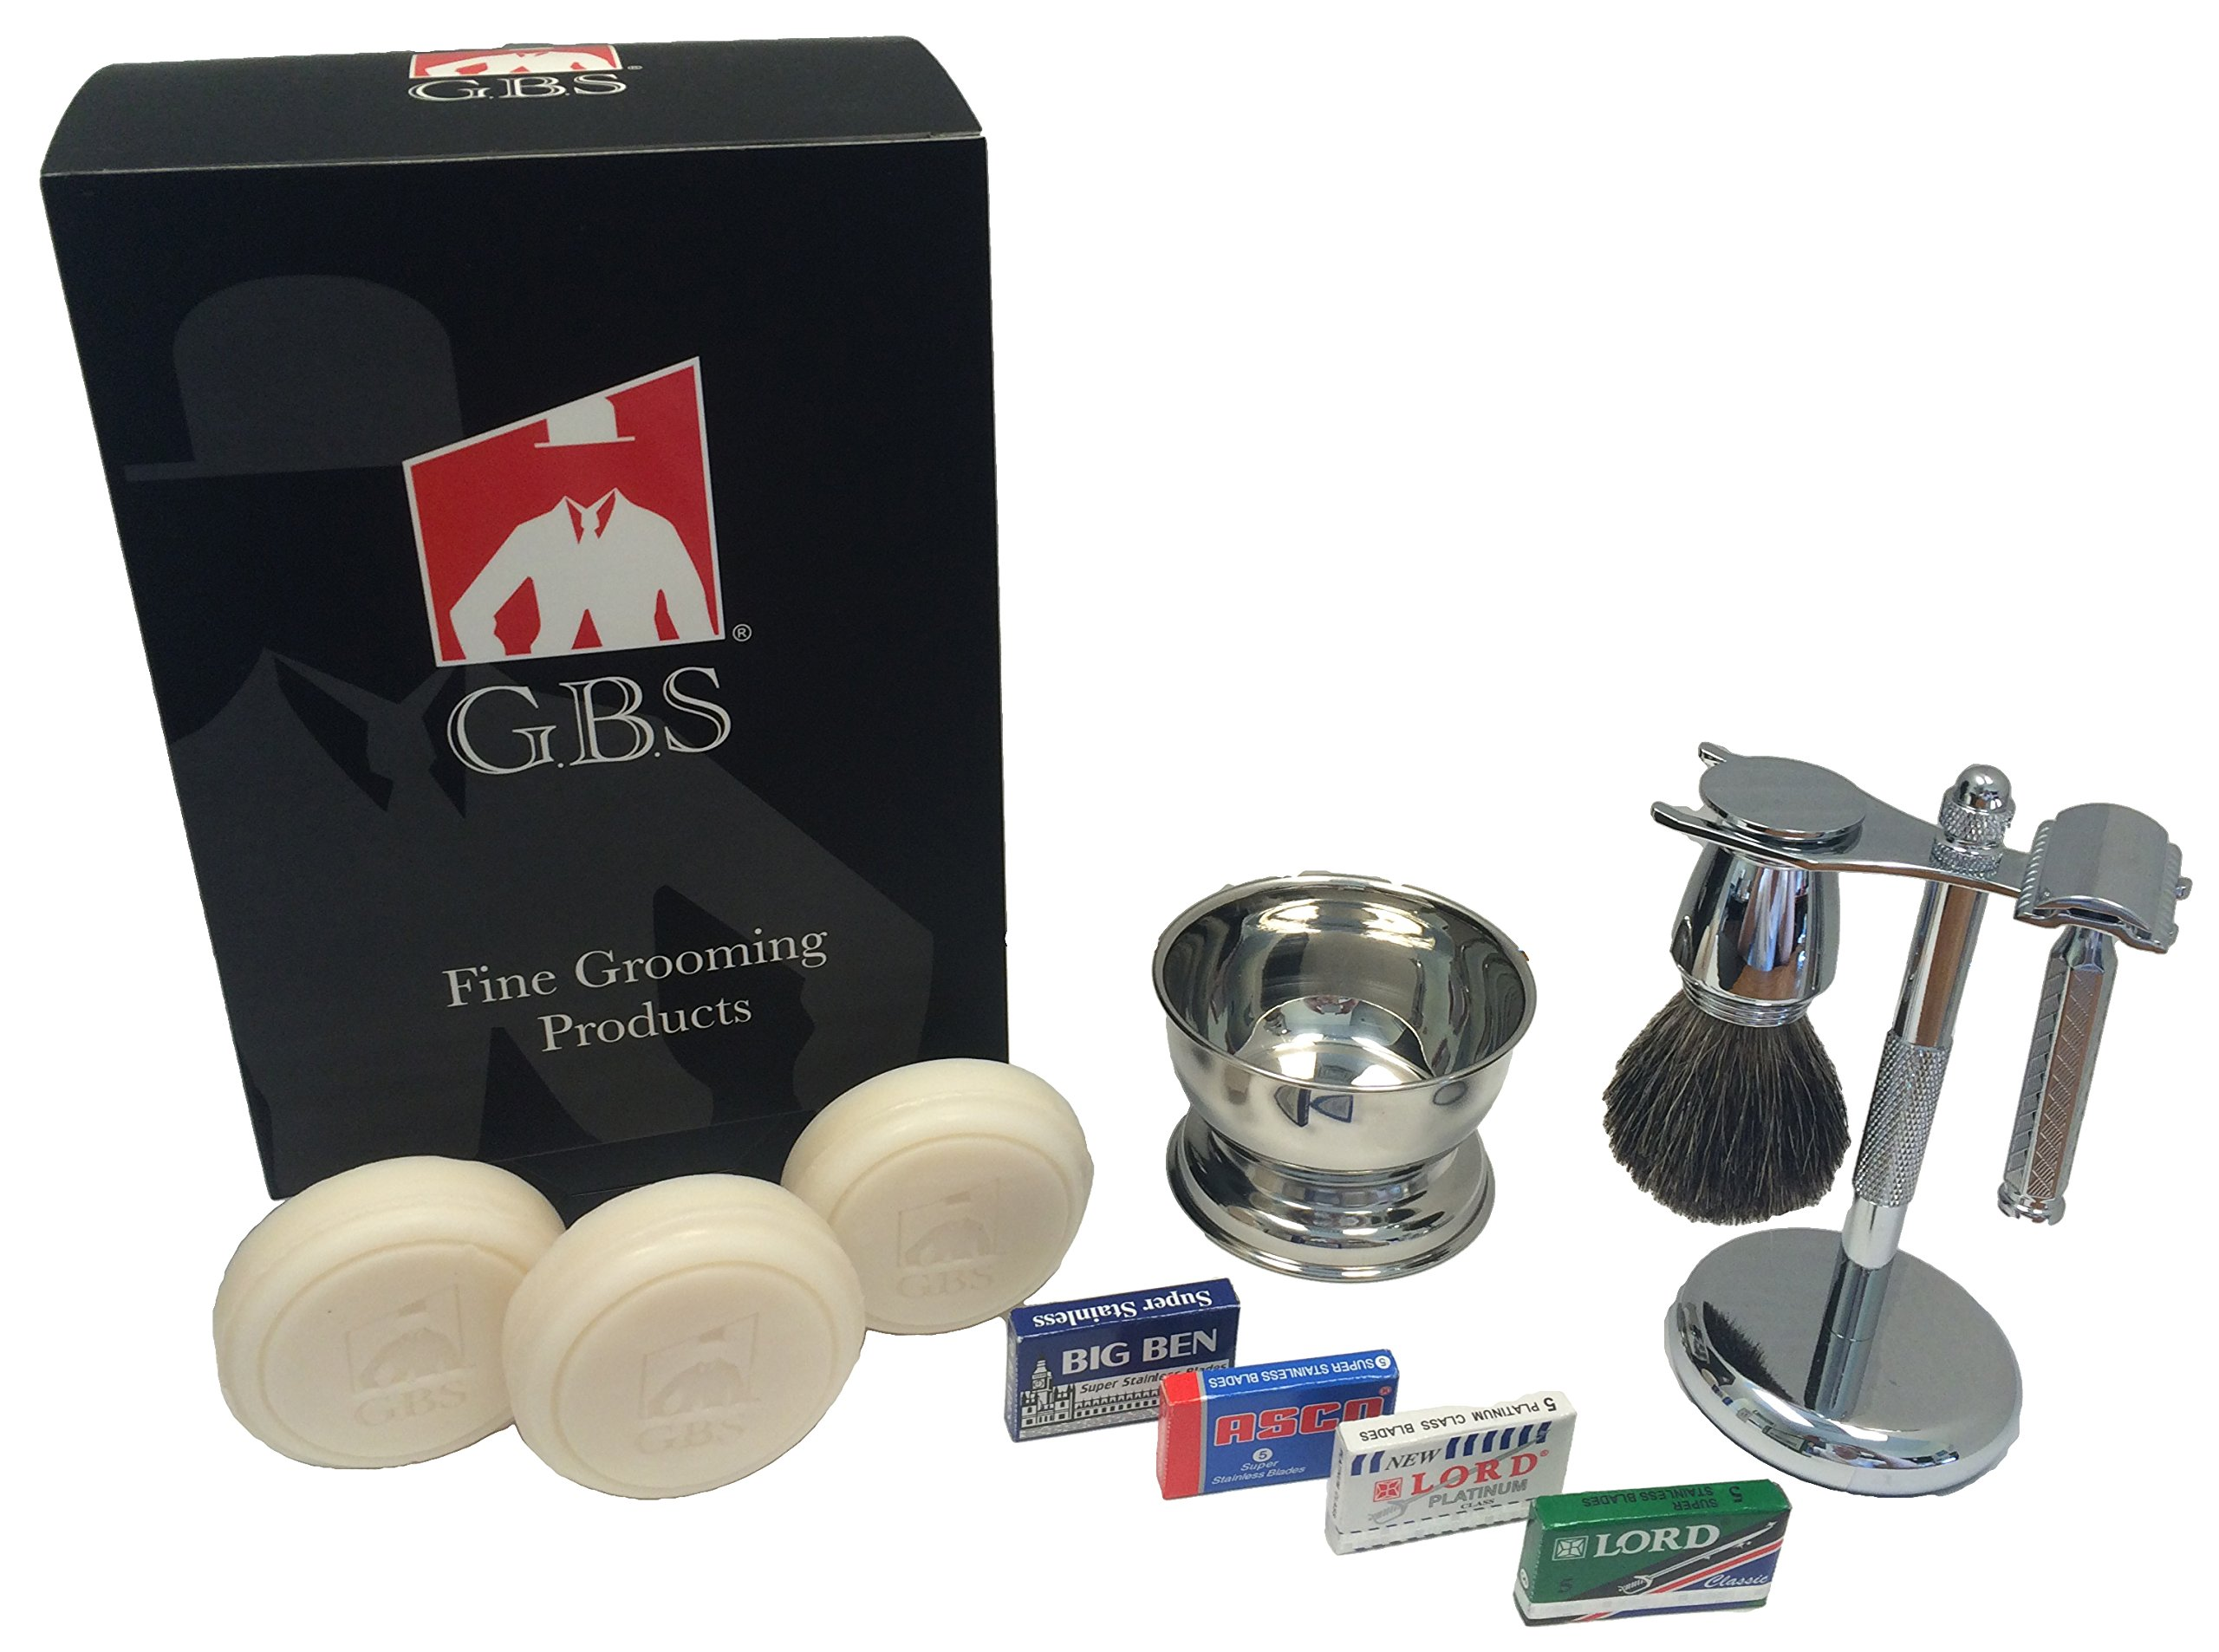 GBS Gift Set - Comes with Gift Box - Merkur 42C Safety Razor, Pure Badger Shaving Brush, Brush and Razor Stand, Chrome Bowl, 3 Pack of GBS Shaving Soap, and 25 Blades!